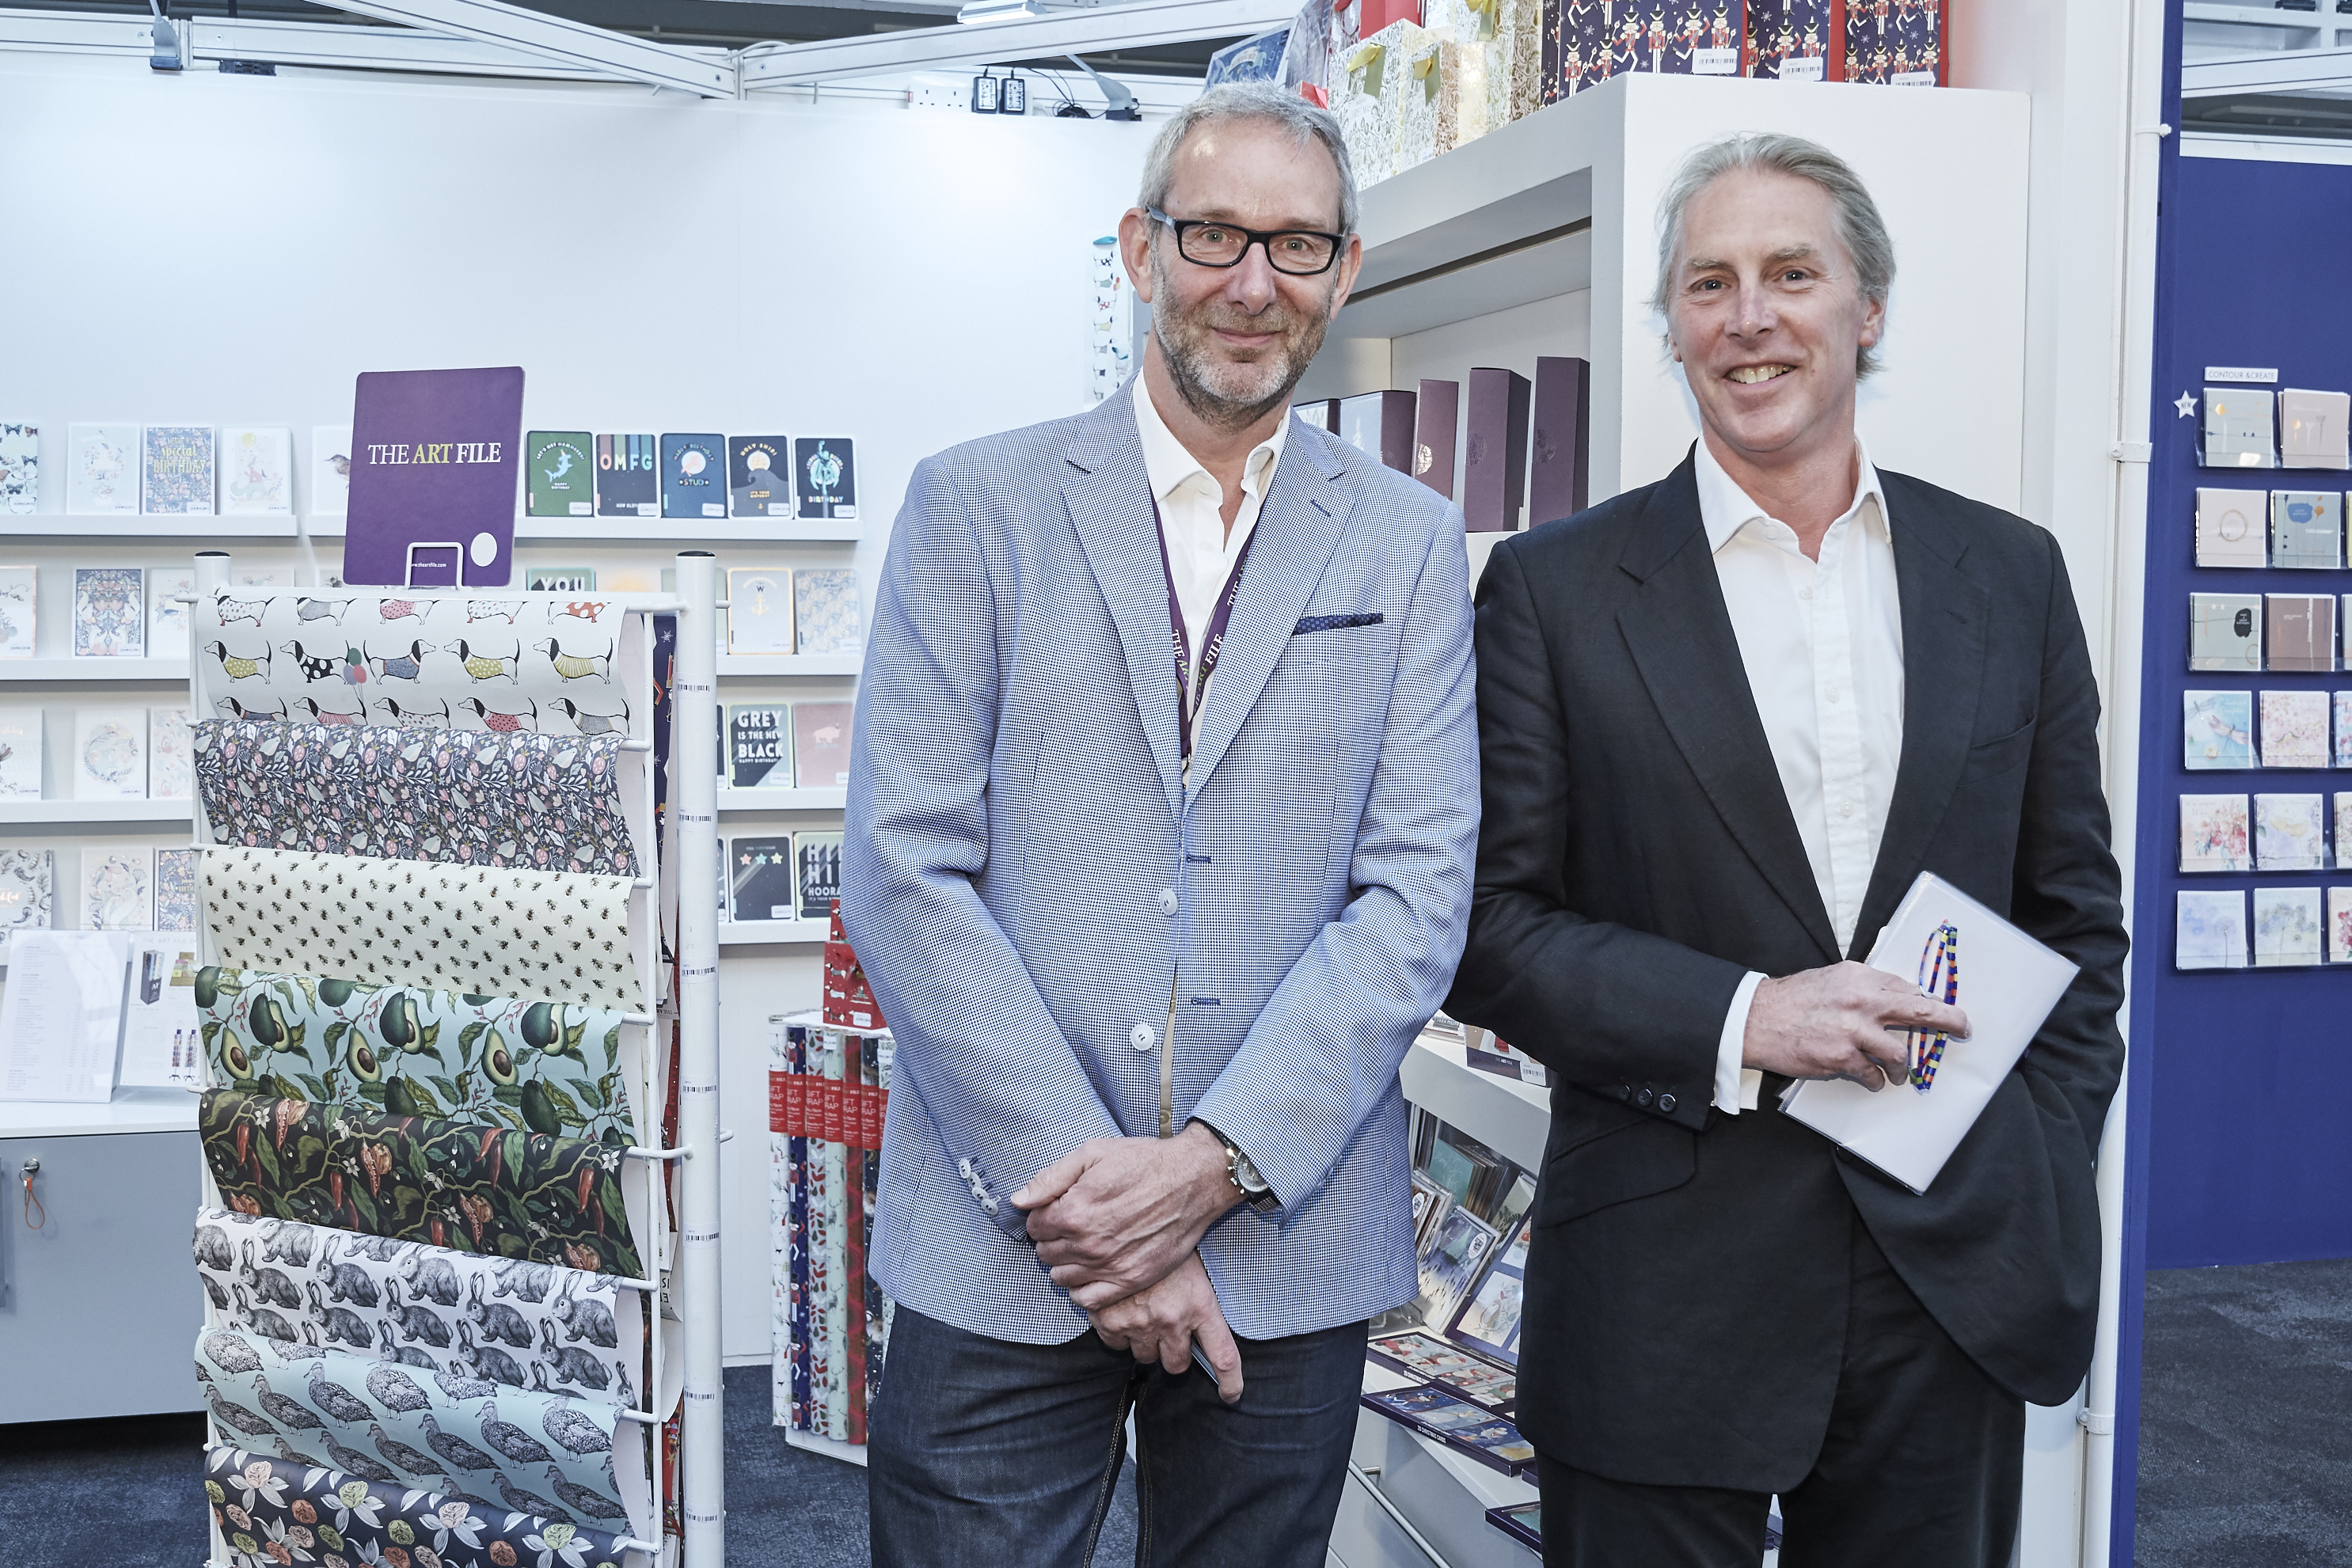 Above: The Art File's Ged Mace (left) with Timothy Melgund, Paperchase's long serving ceo for many years, but now has a non-exec position as deputy chairman of the business.